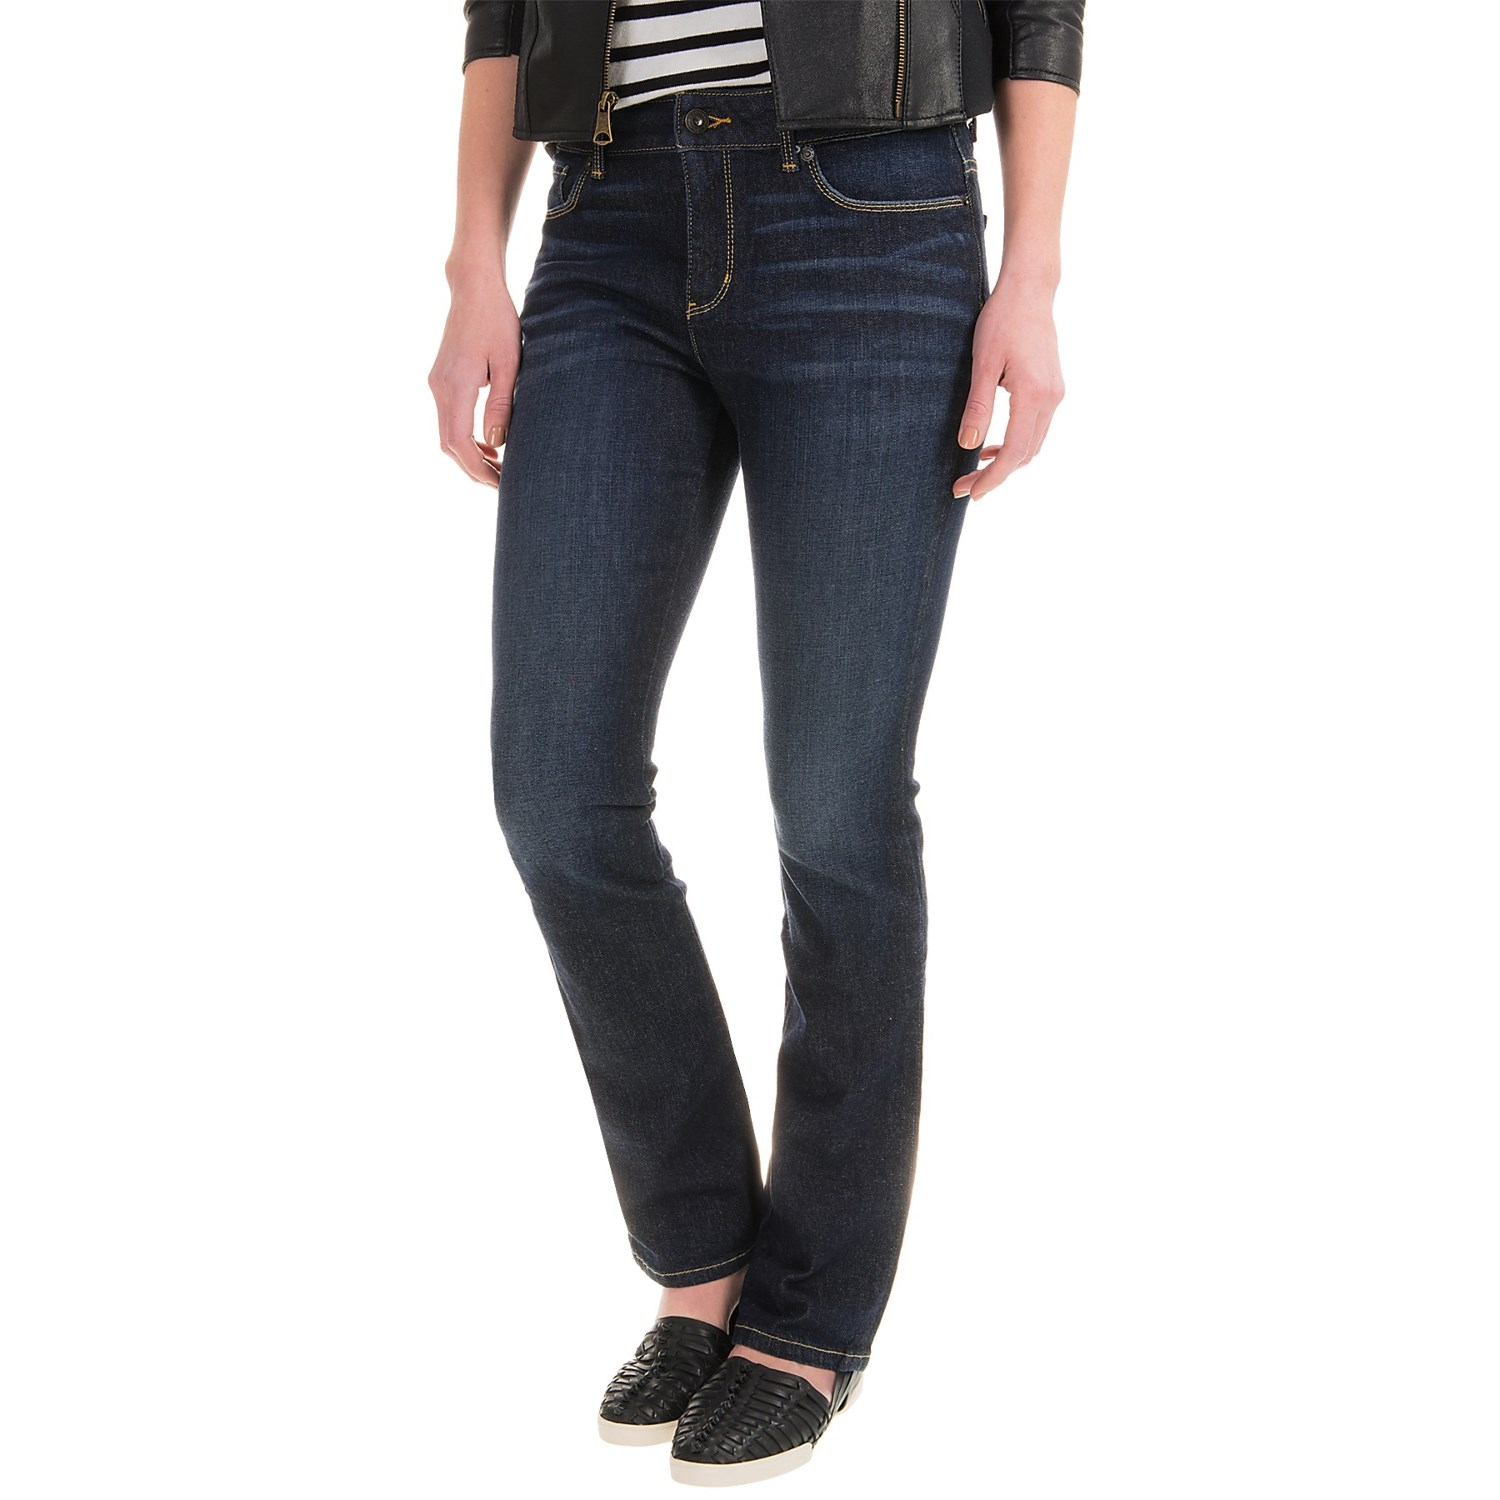 Stretch-Denim Boyfriend Jeans (For Women) - Save 75%